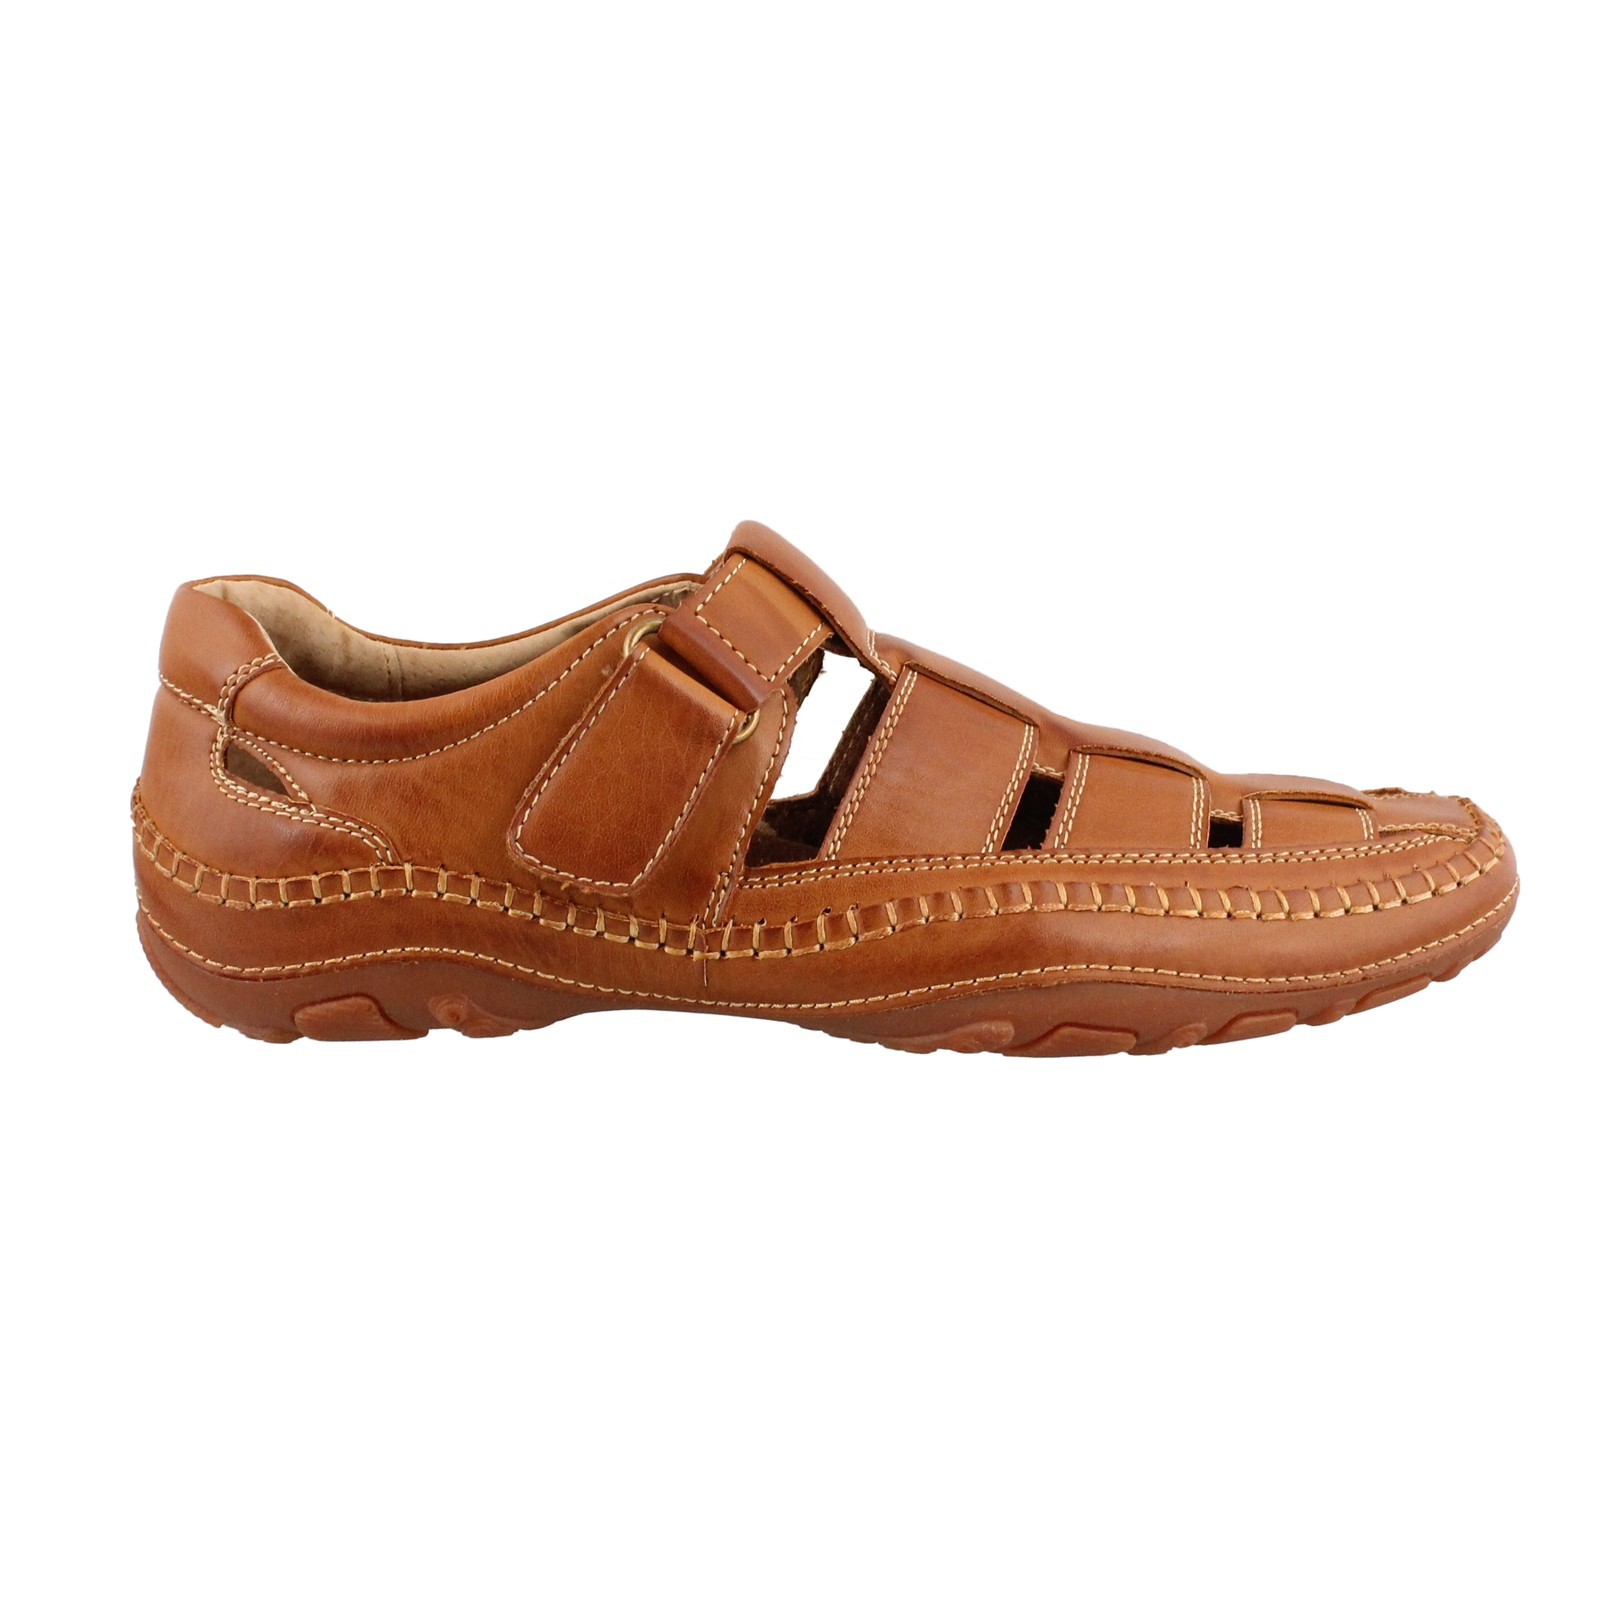 Men's Giorgio Brutini, Sentaur Fisherman Sandals